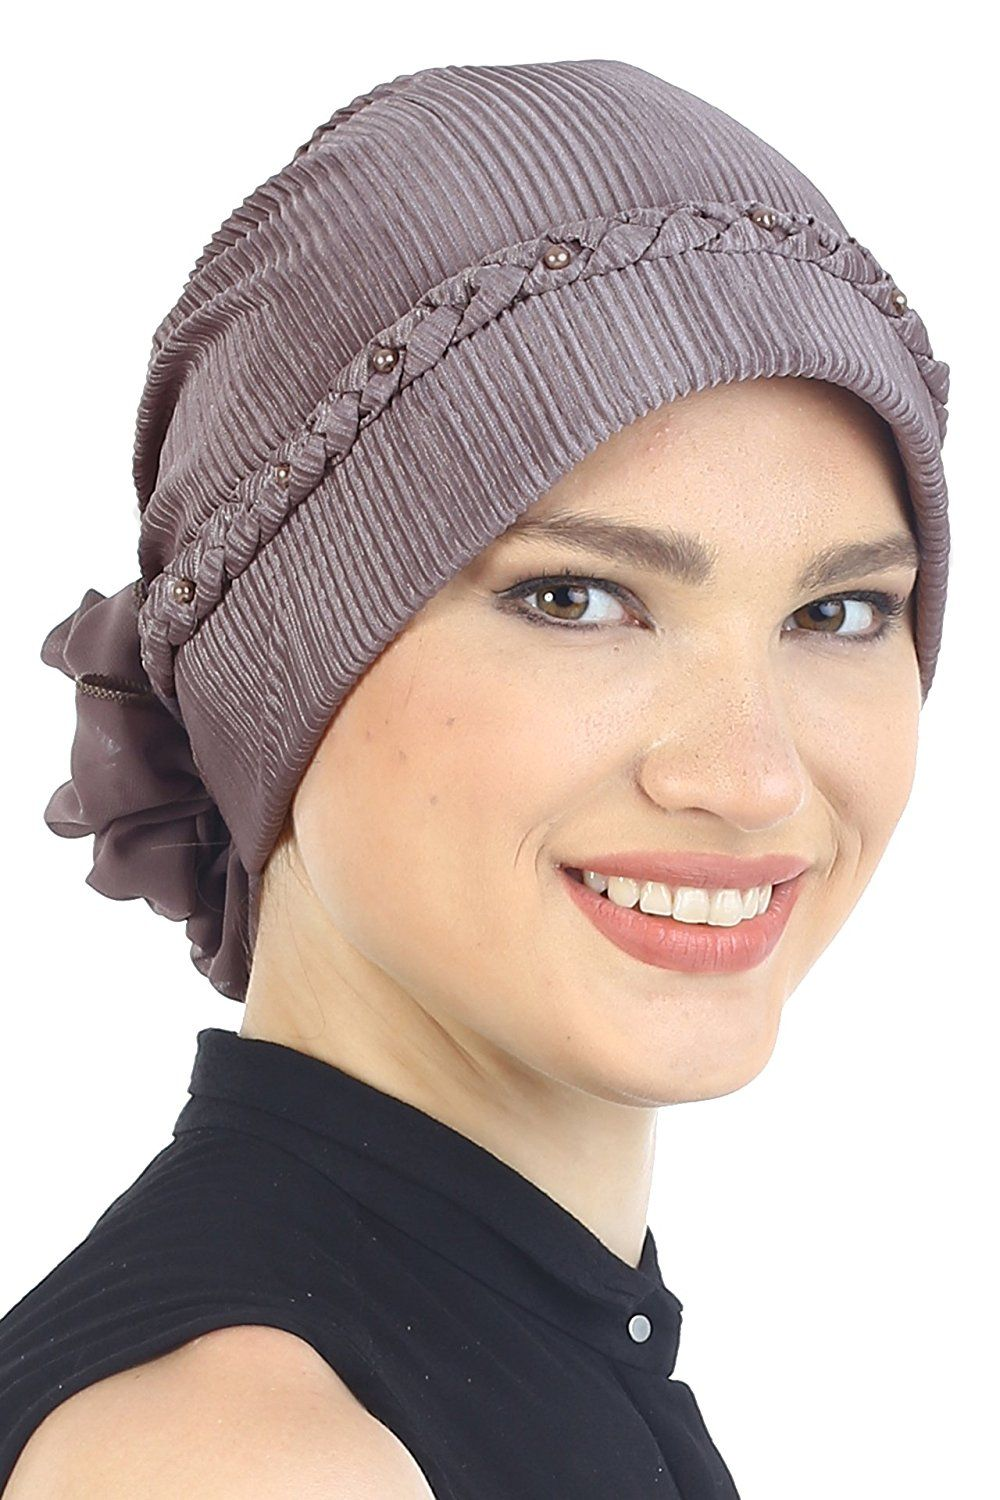 Braided & Pearl Detail Headwear (Black) at Amazon Women's Clothing store: